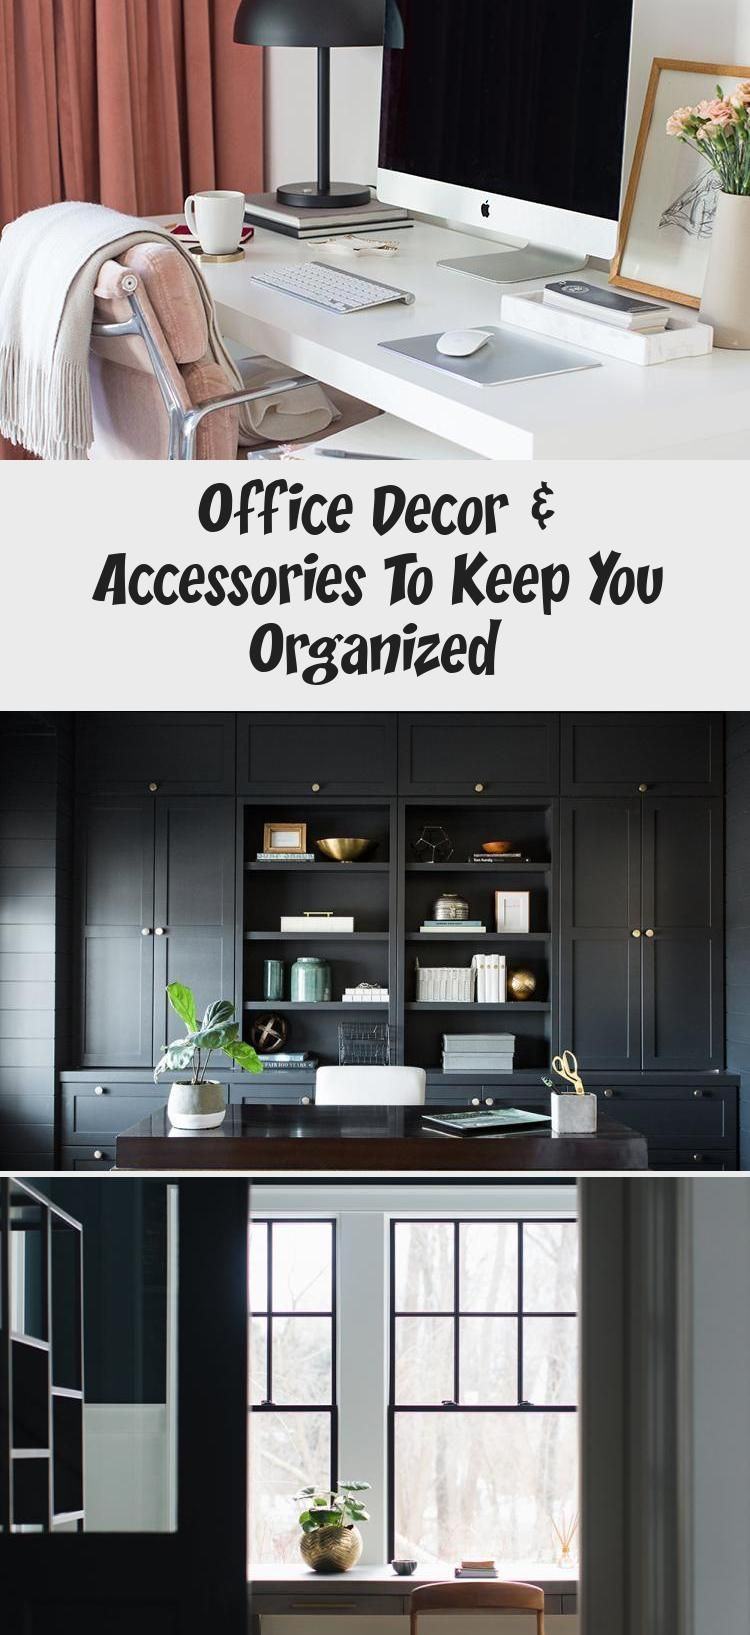 Office Decor Accessories To Keep You Organized Erin S Blog Accessories Blog Decor Erins Office Organized In 2020 Office Decor Decorative Accessories Decor